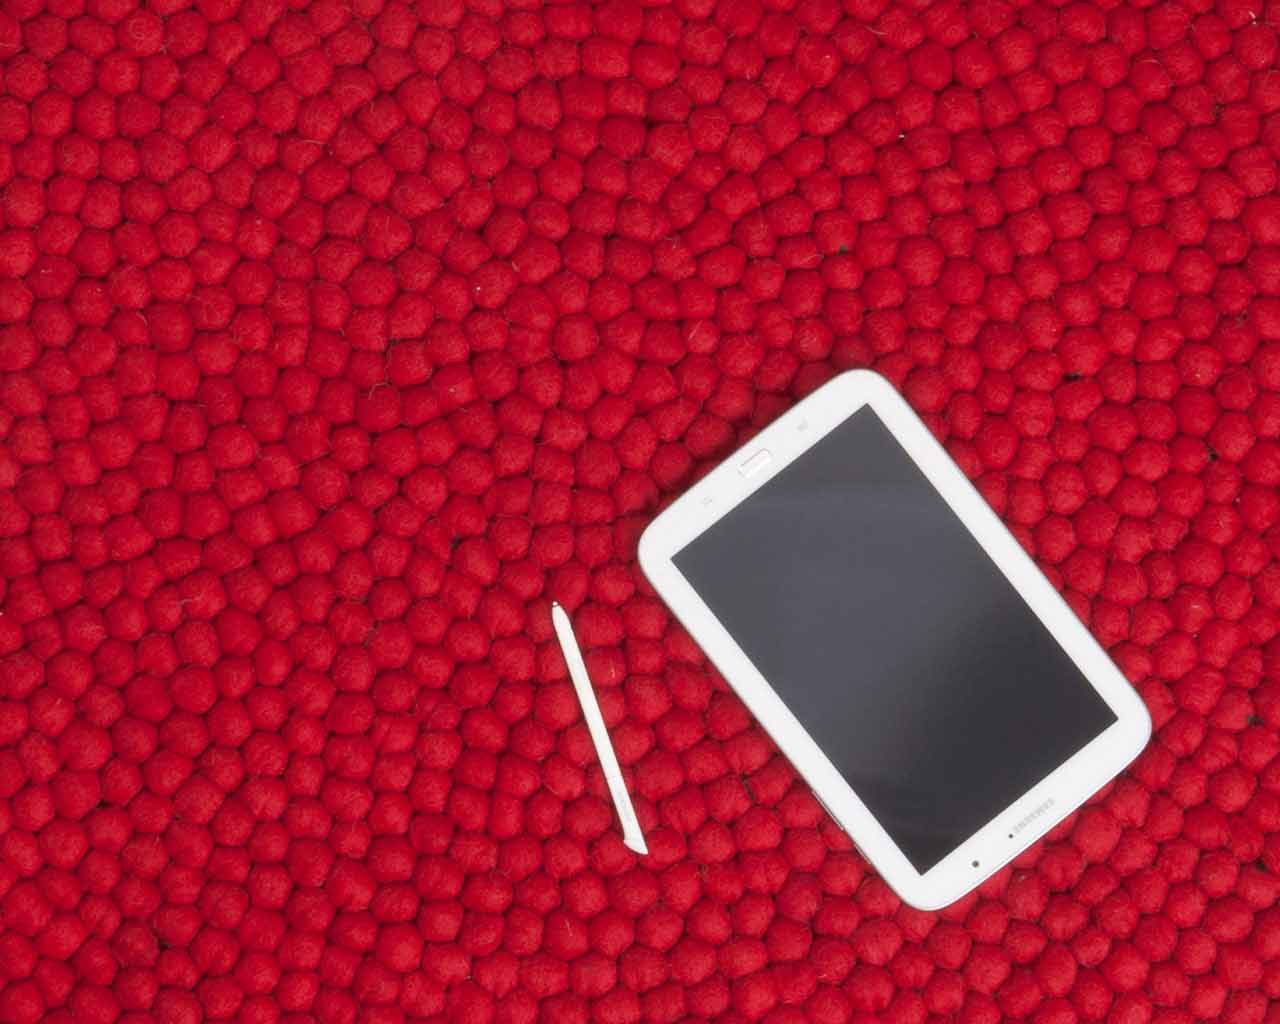 tablet carpet red white designer